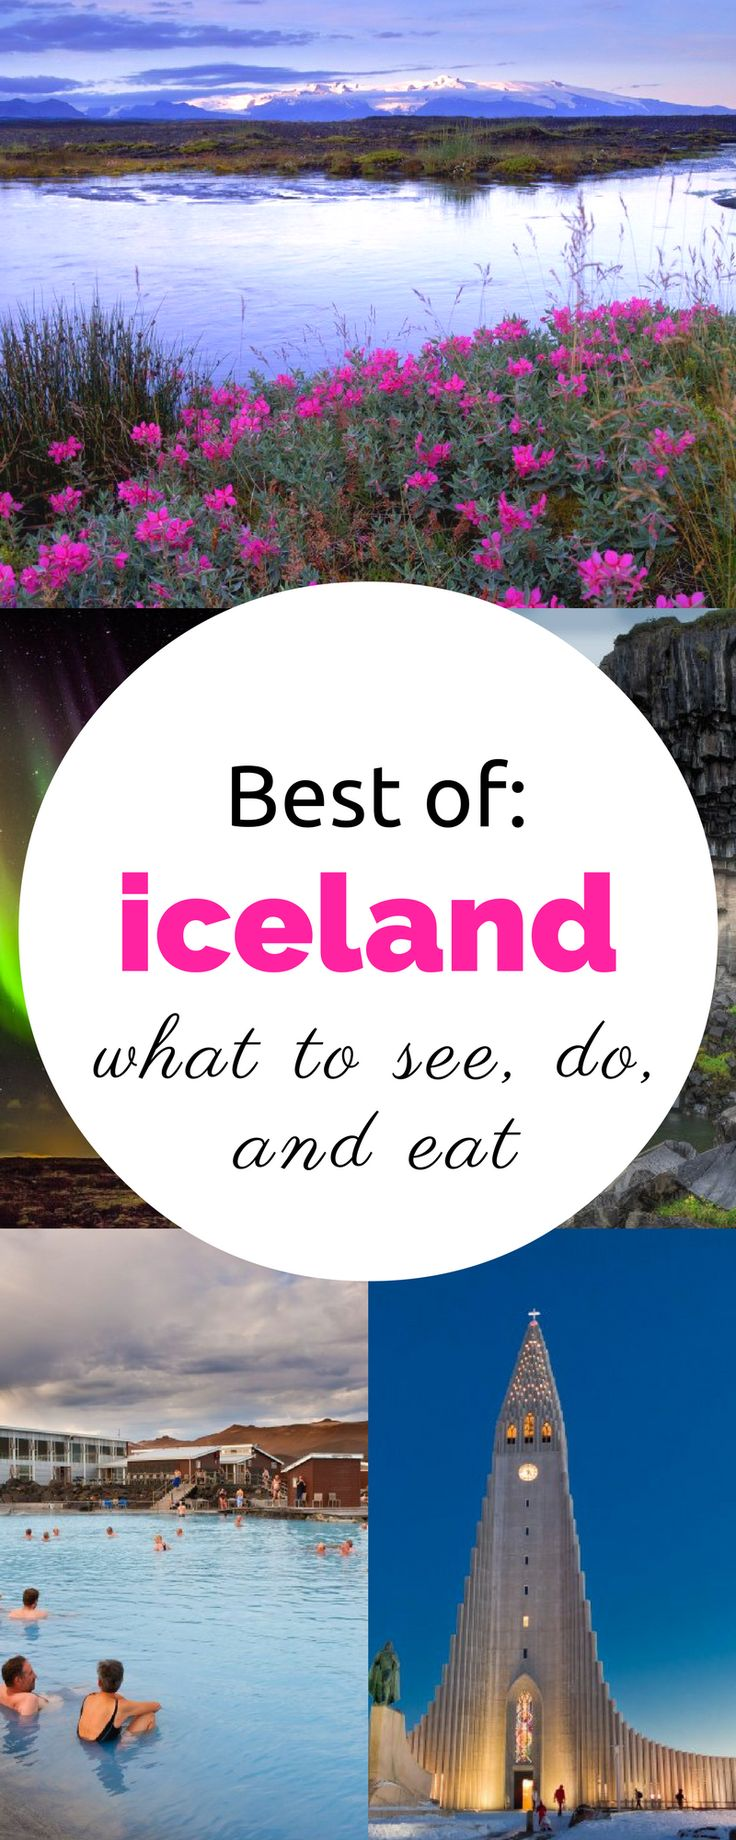 WHAT TO DO IN ICELAND! Such an easy trip from the US now! Saving this pin for later when I book my trip to Iceland!